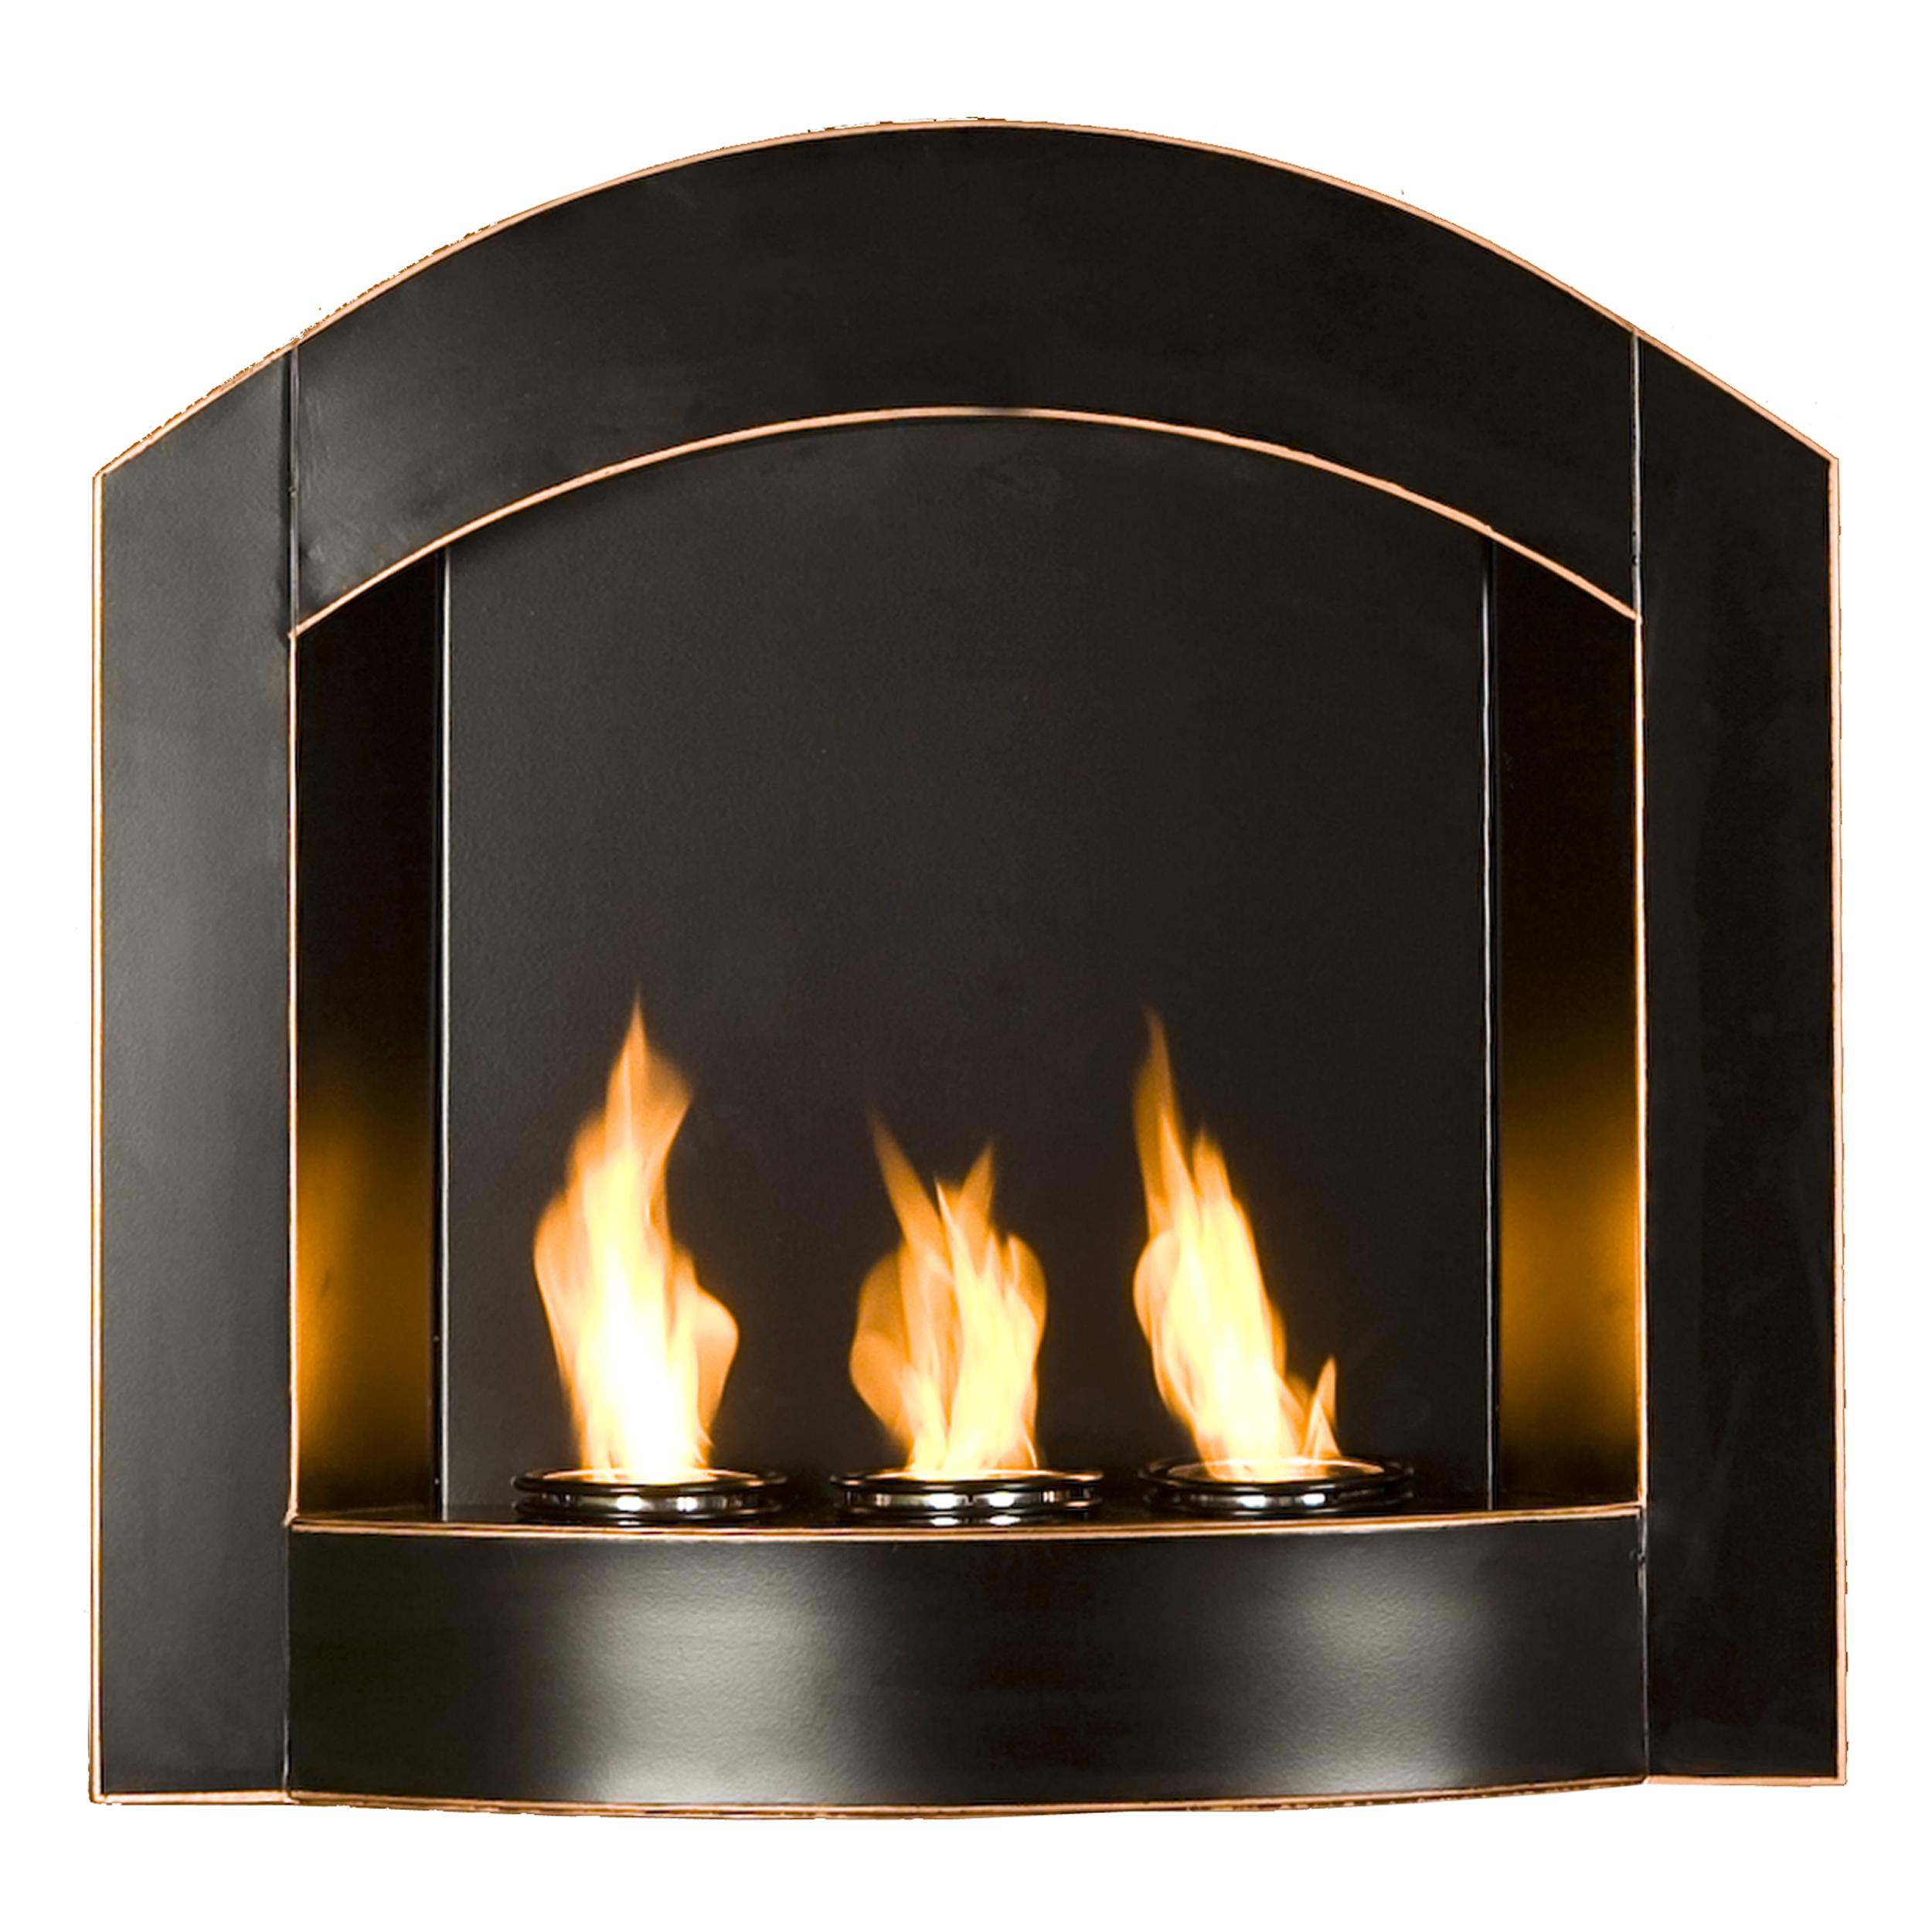 columbia roofing gallery fireplace areas unlimited design hendrix ellicott md fireplaces olanguju service city annapolis